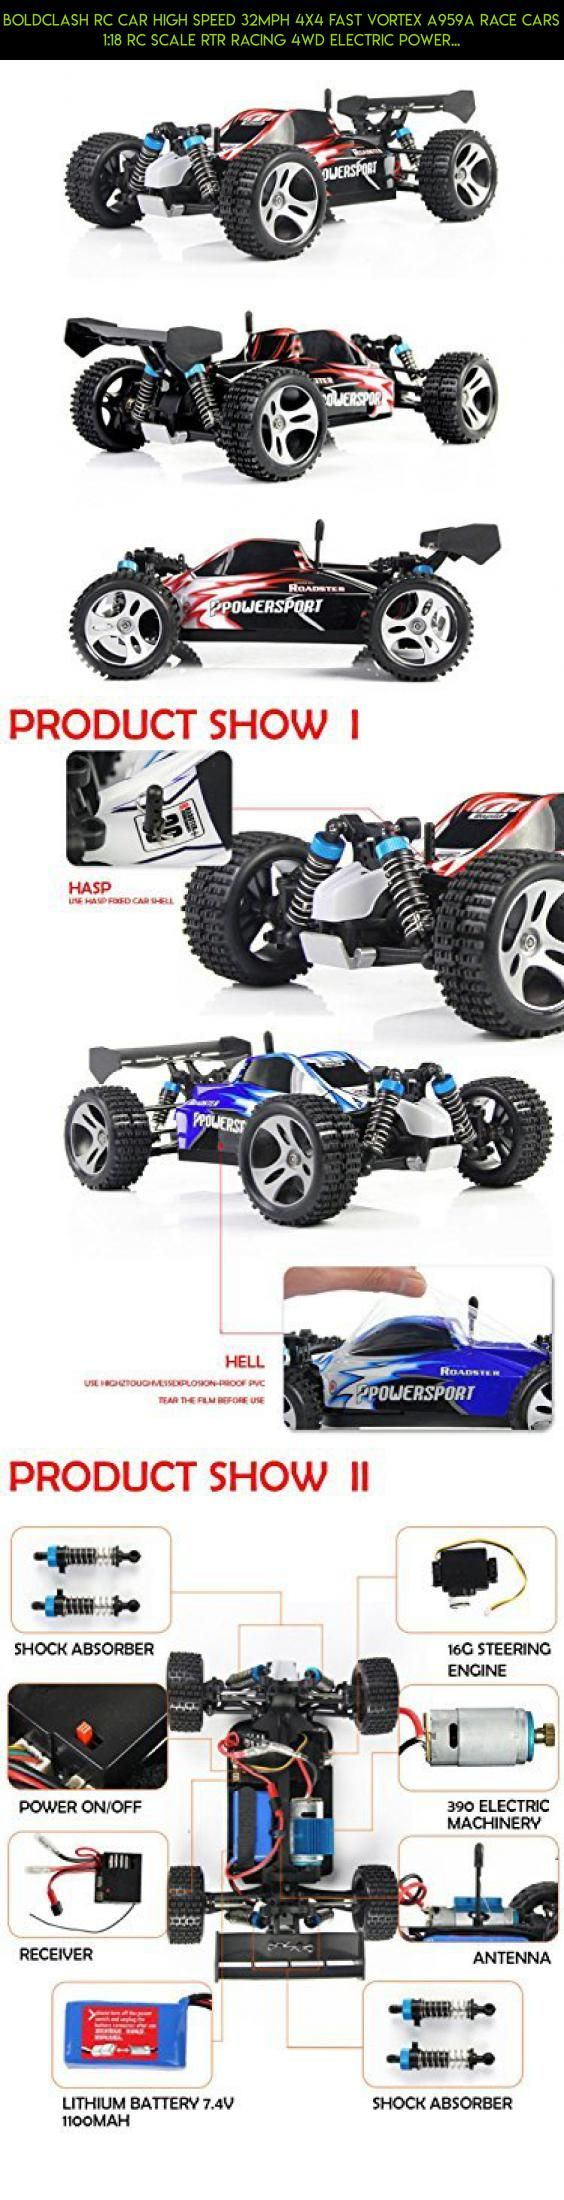 Boldclash RC Car High Speed 32MPH 4x4 Fast Vortex A959A Race Cars 1:18 RC SCALE RTR Racing 4WD ELECTRIC POWER BUGGY W/2.4G Radio Remote control Off Road Truck Powersport Roadster, Red #technology #4x4 #camera #racing #drone #tech #gadgets #plans #shopping #fpv #kit #parts #products #wltoys